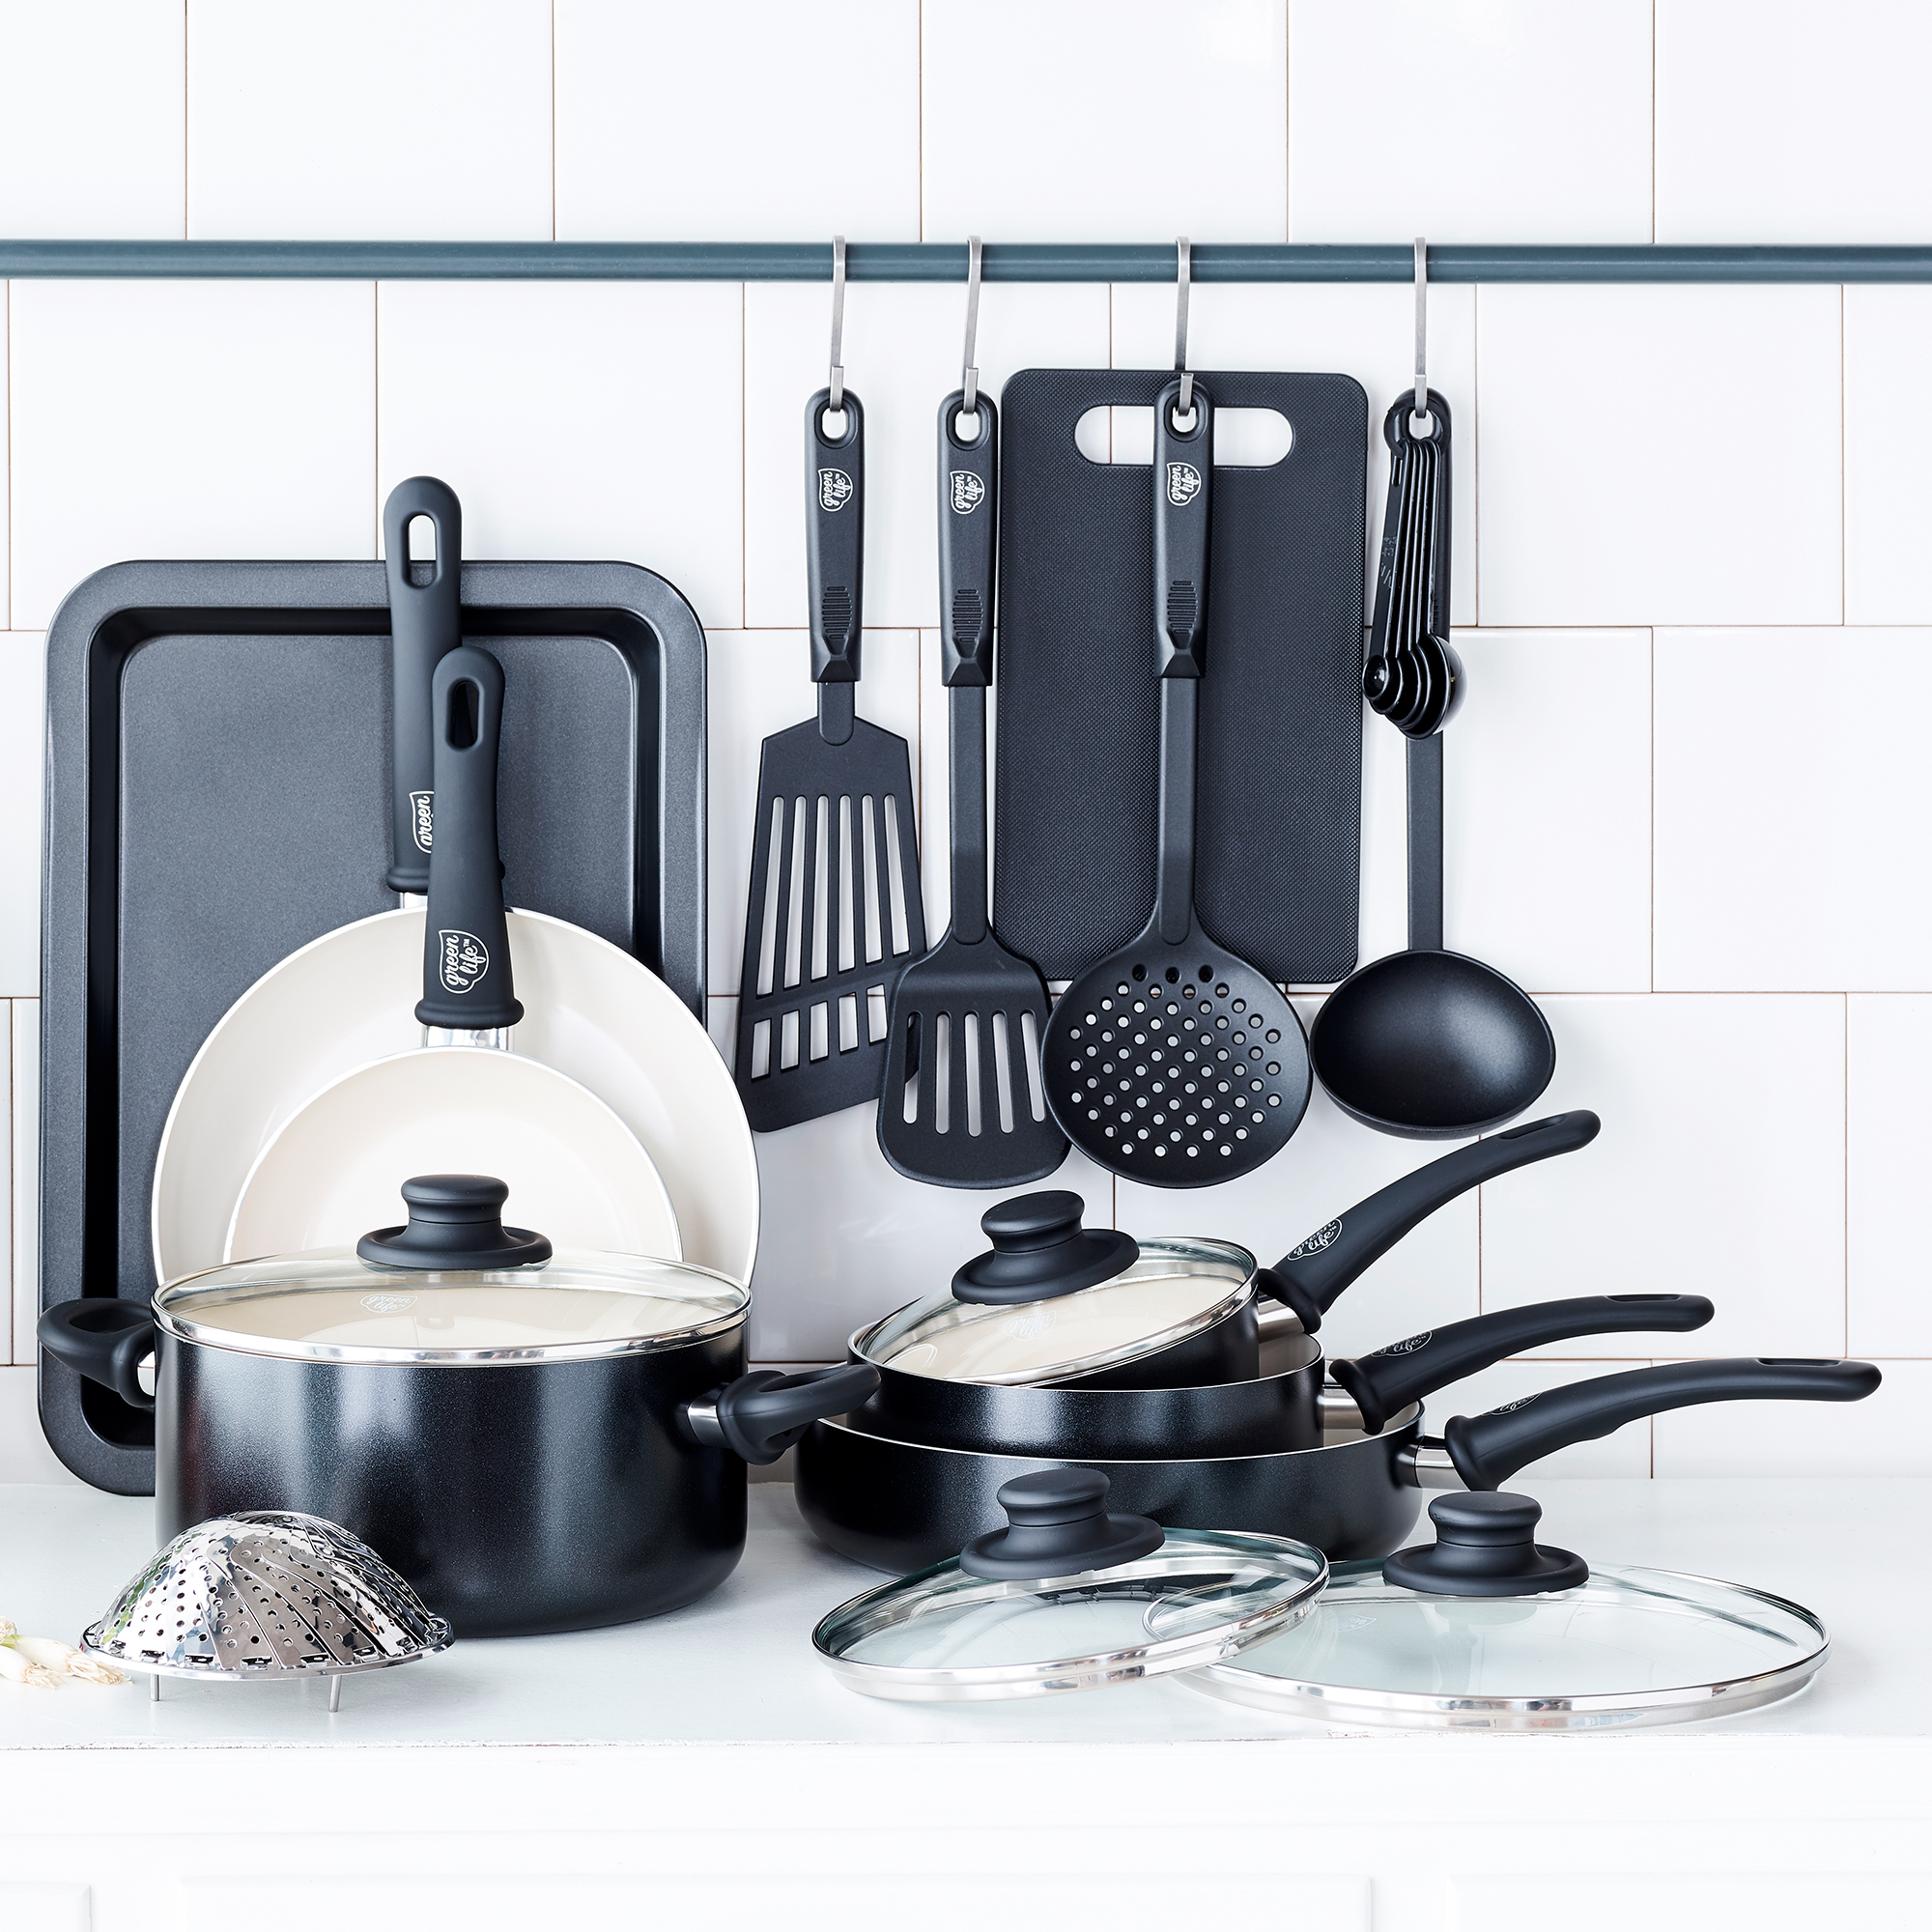 GreenLife 18-Piece Soft Grip Ceramic Non-Stick Cookware Set Only $39.97